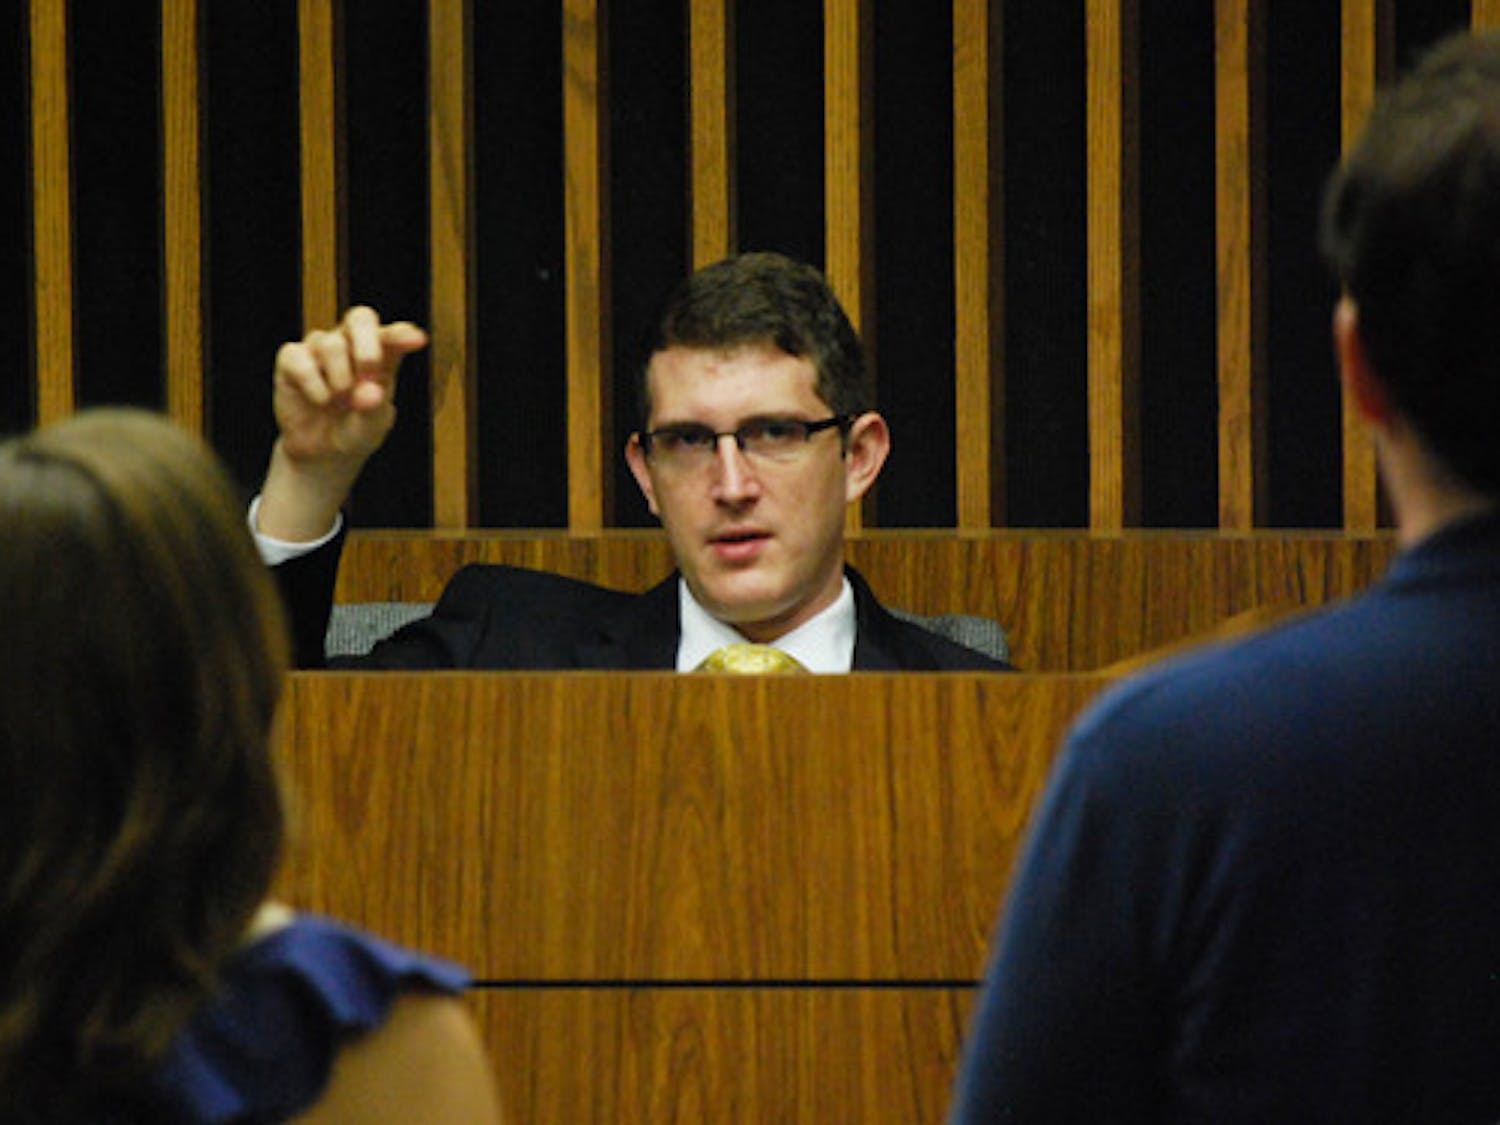 UF Supreme Court Associate Justice Tim Mason questions members of the Election Commission during Monday night's hearing. The Court decided to lift the injunction that had postponed the Student Senate's vote on whether to validate the Student Government elections.